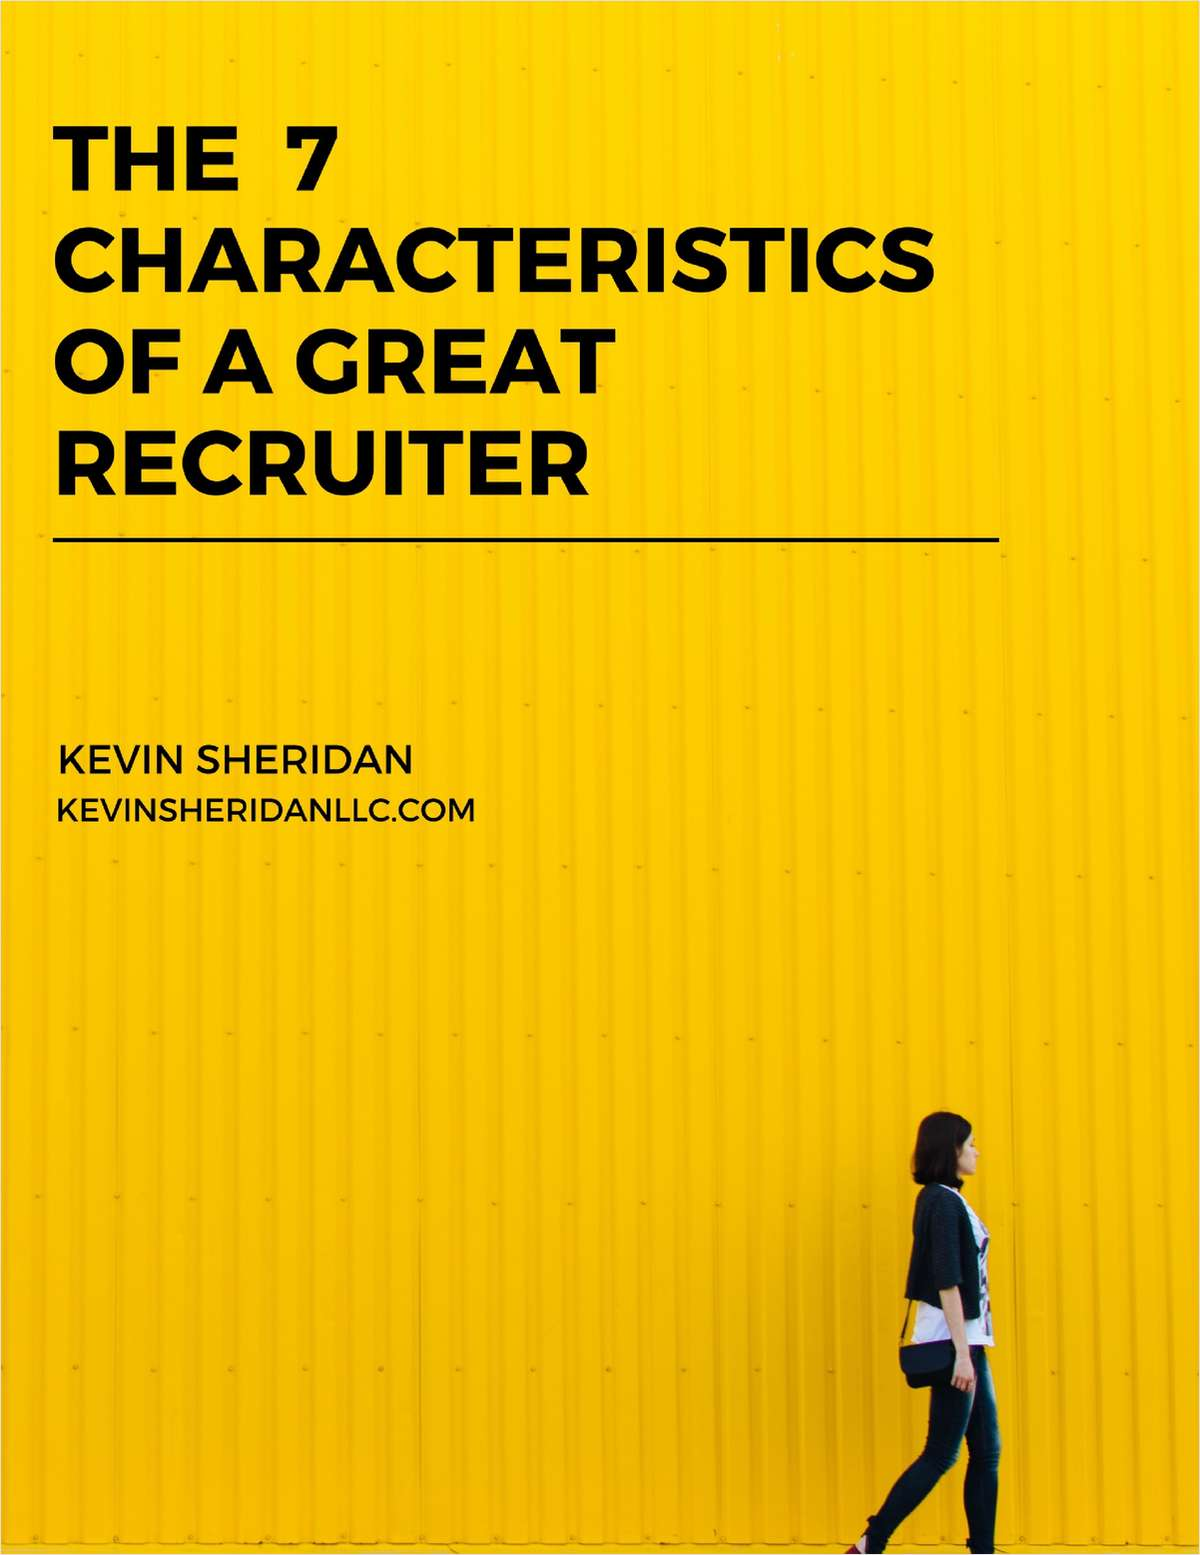 The 7 Characteristics of a Great Recruiter